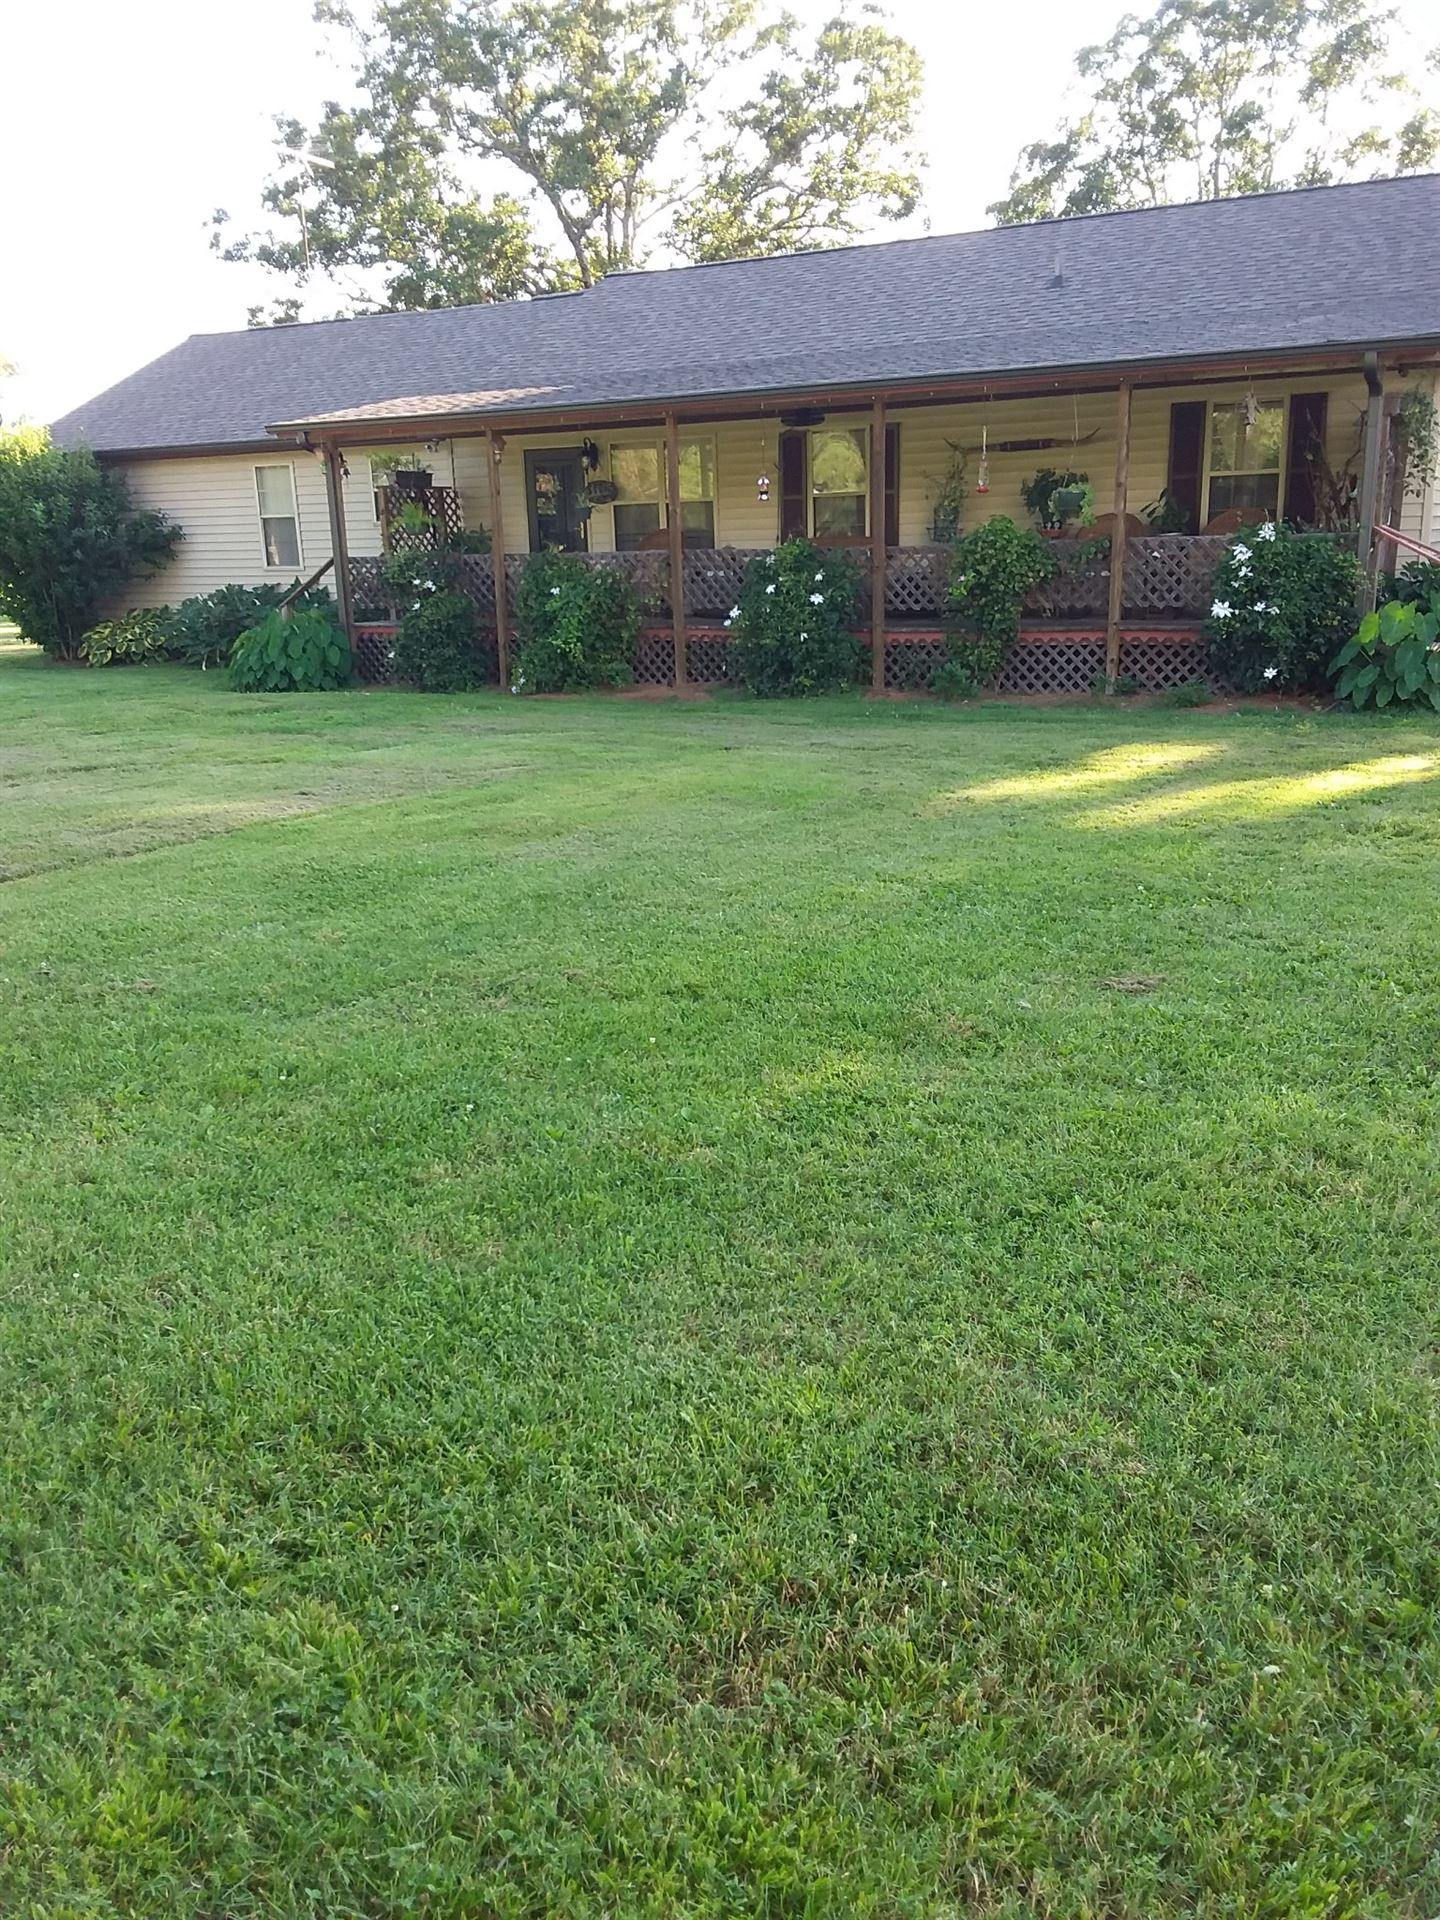 Photo of 1115 Lumley Stand Rd, Manchester, TN 37355 (MLS # 2168755)